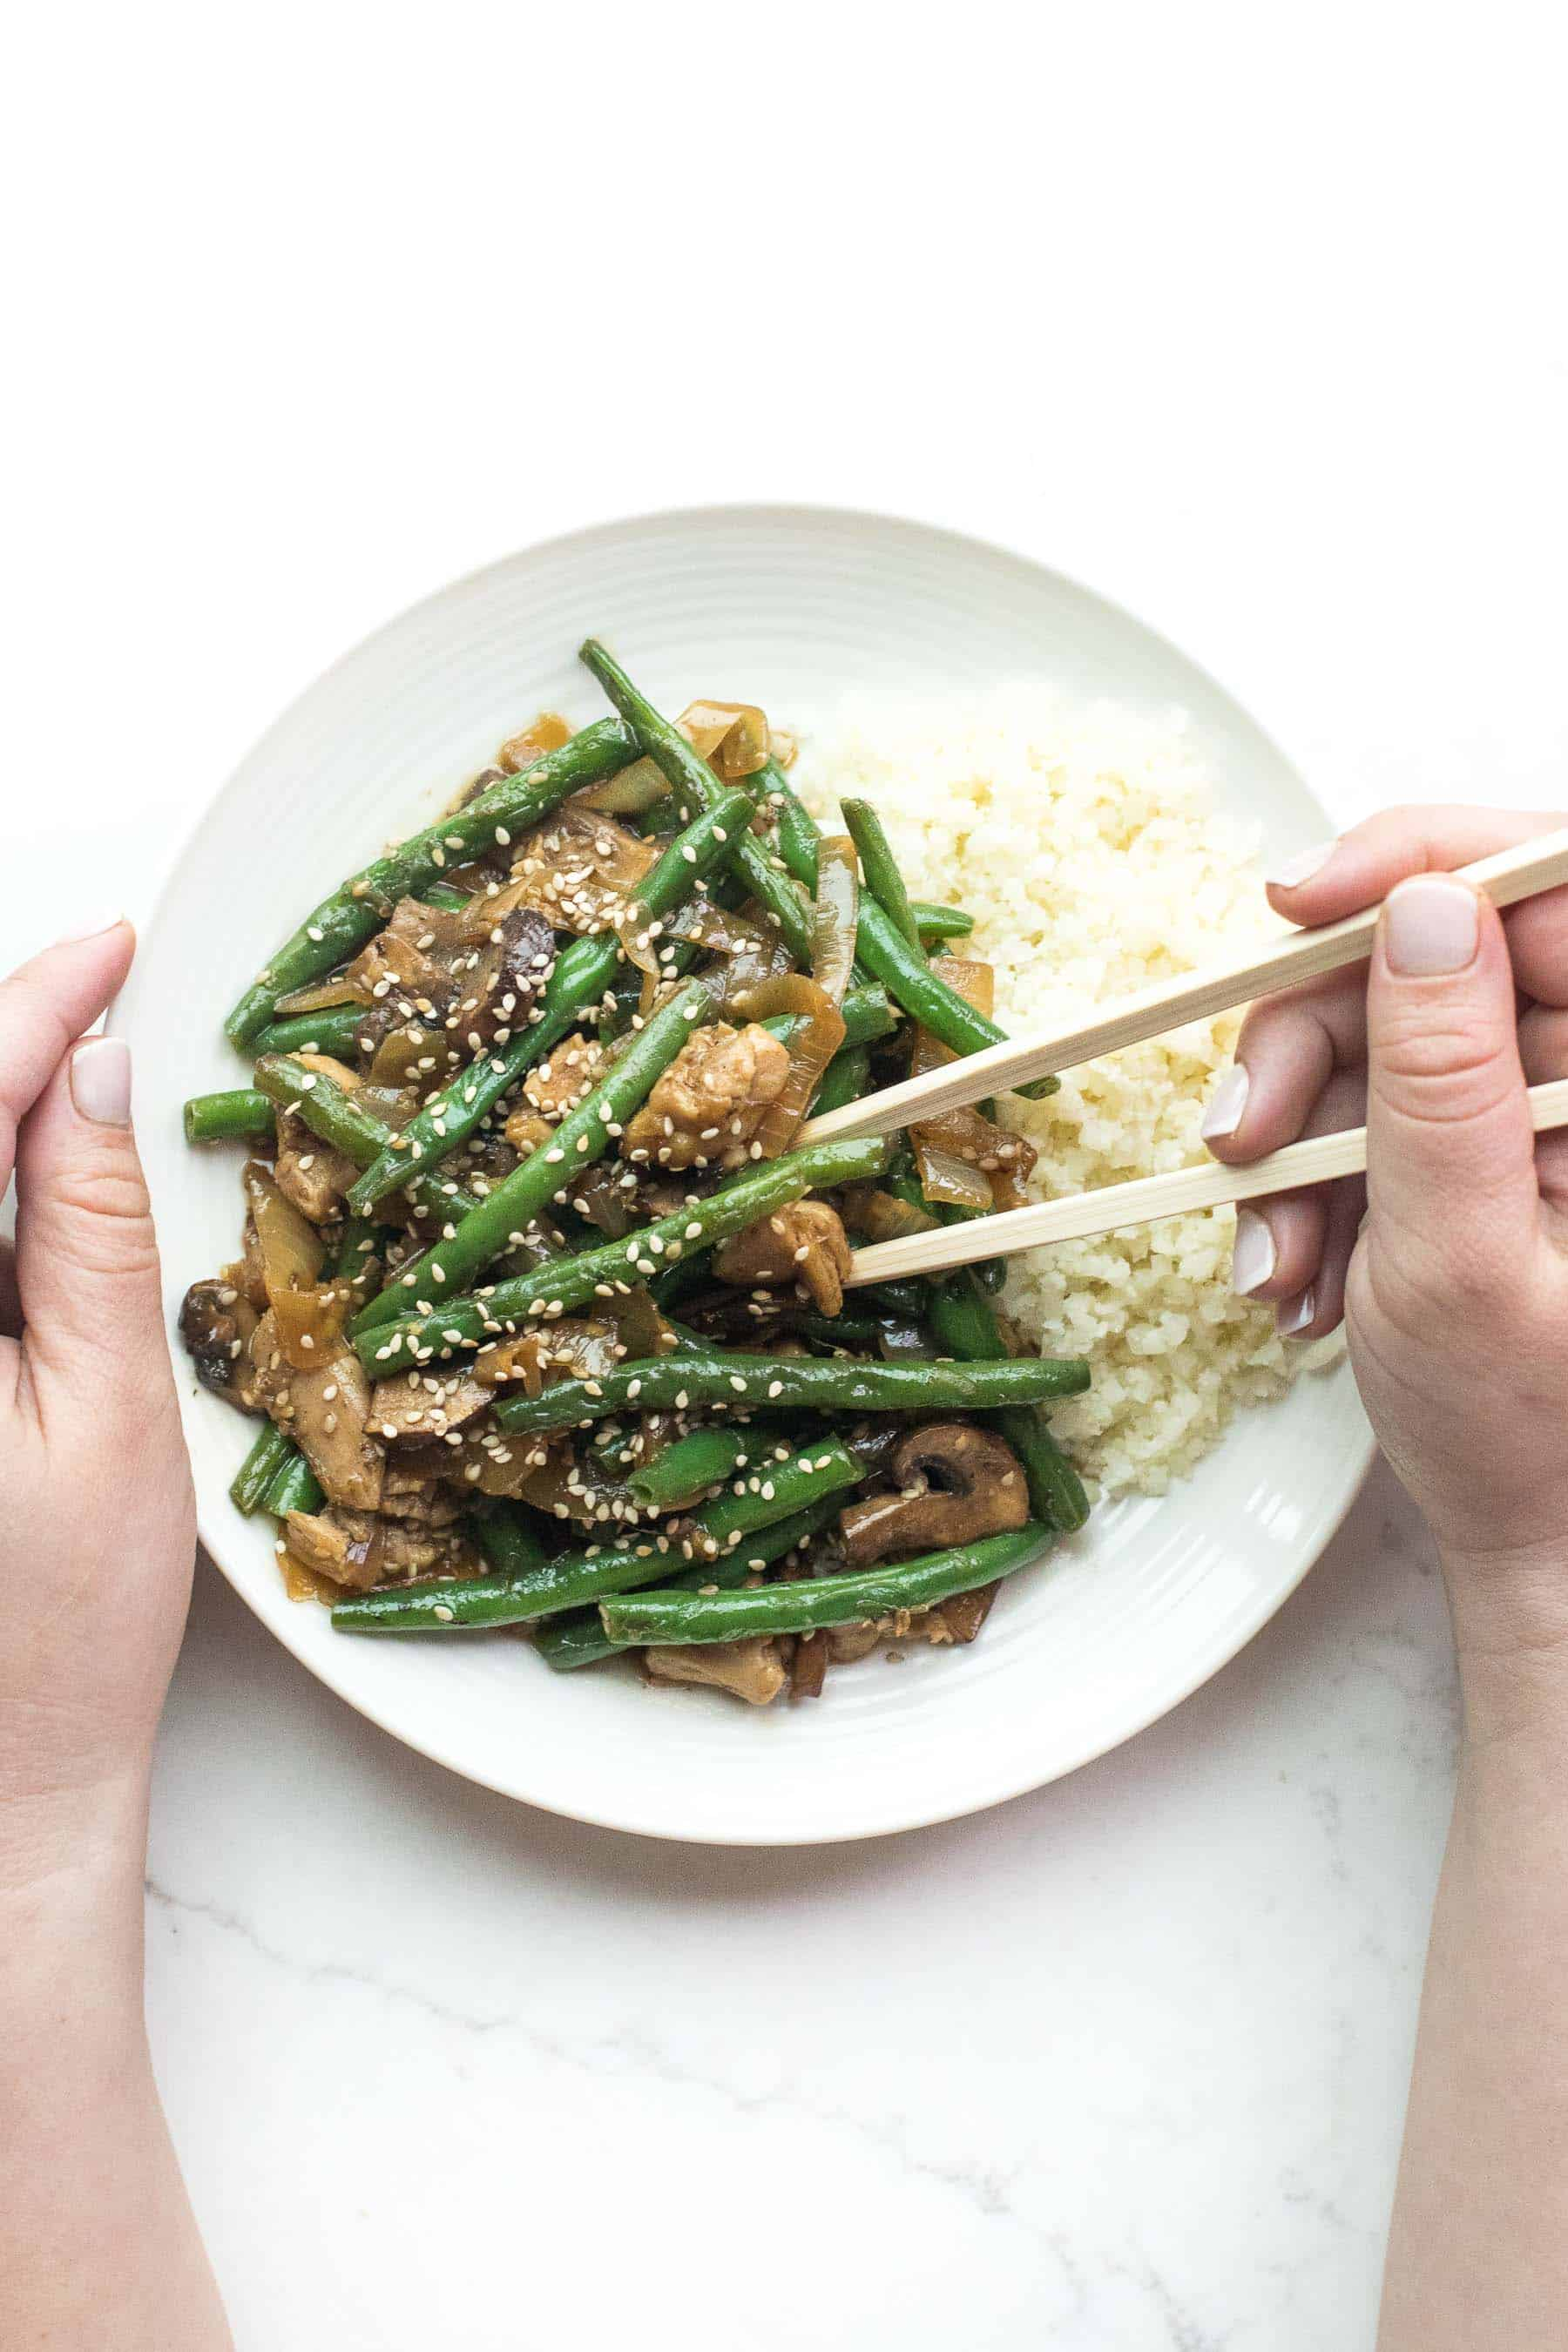 2 hands holding chopsticks to eat sesame chicken green bean stir fry